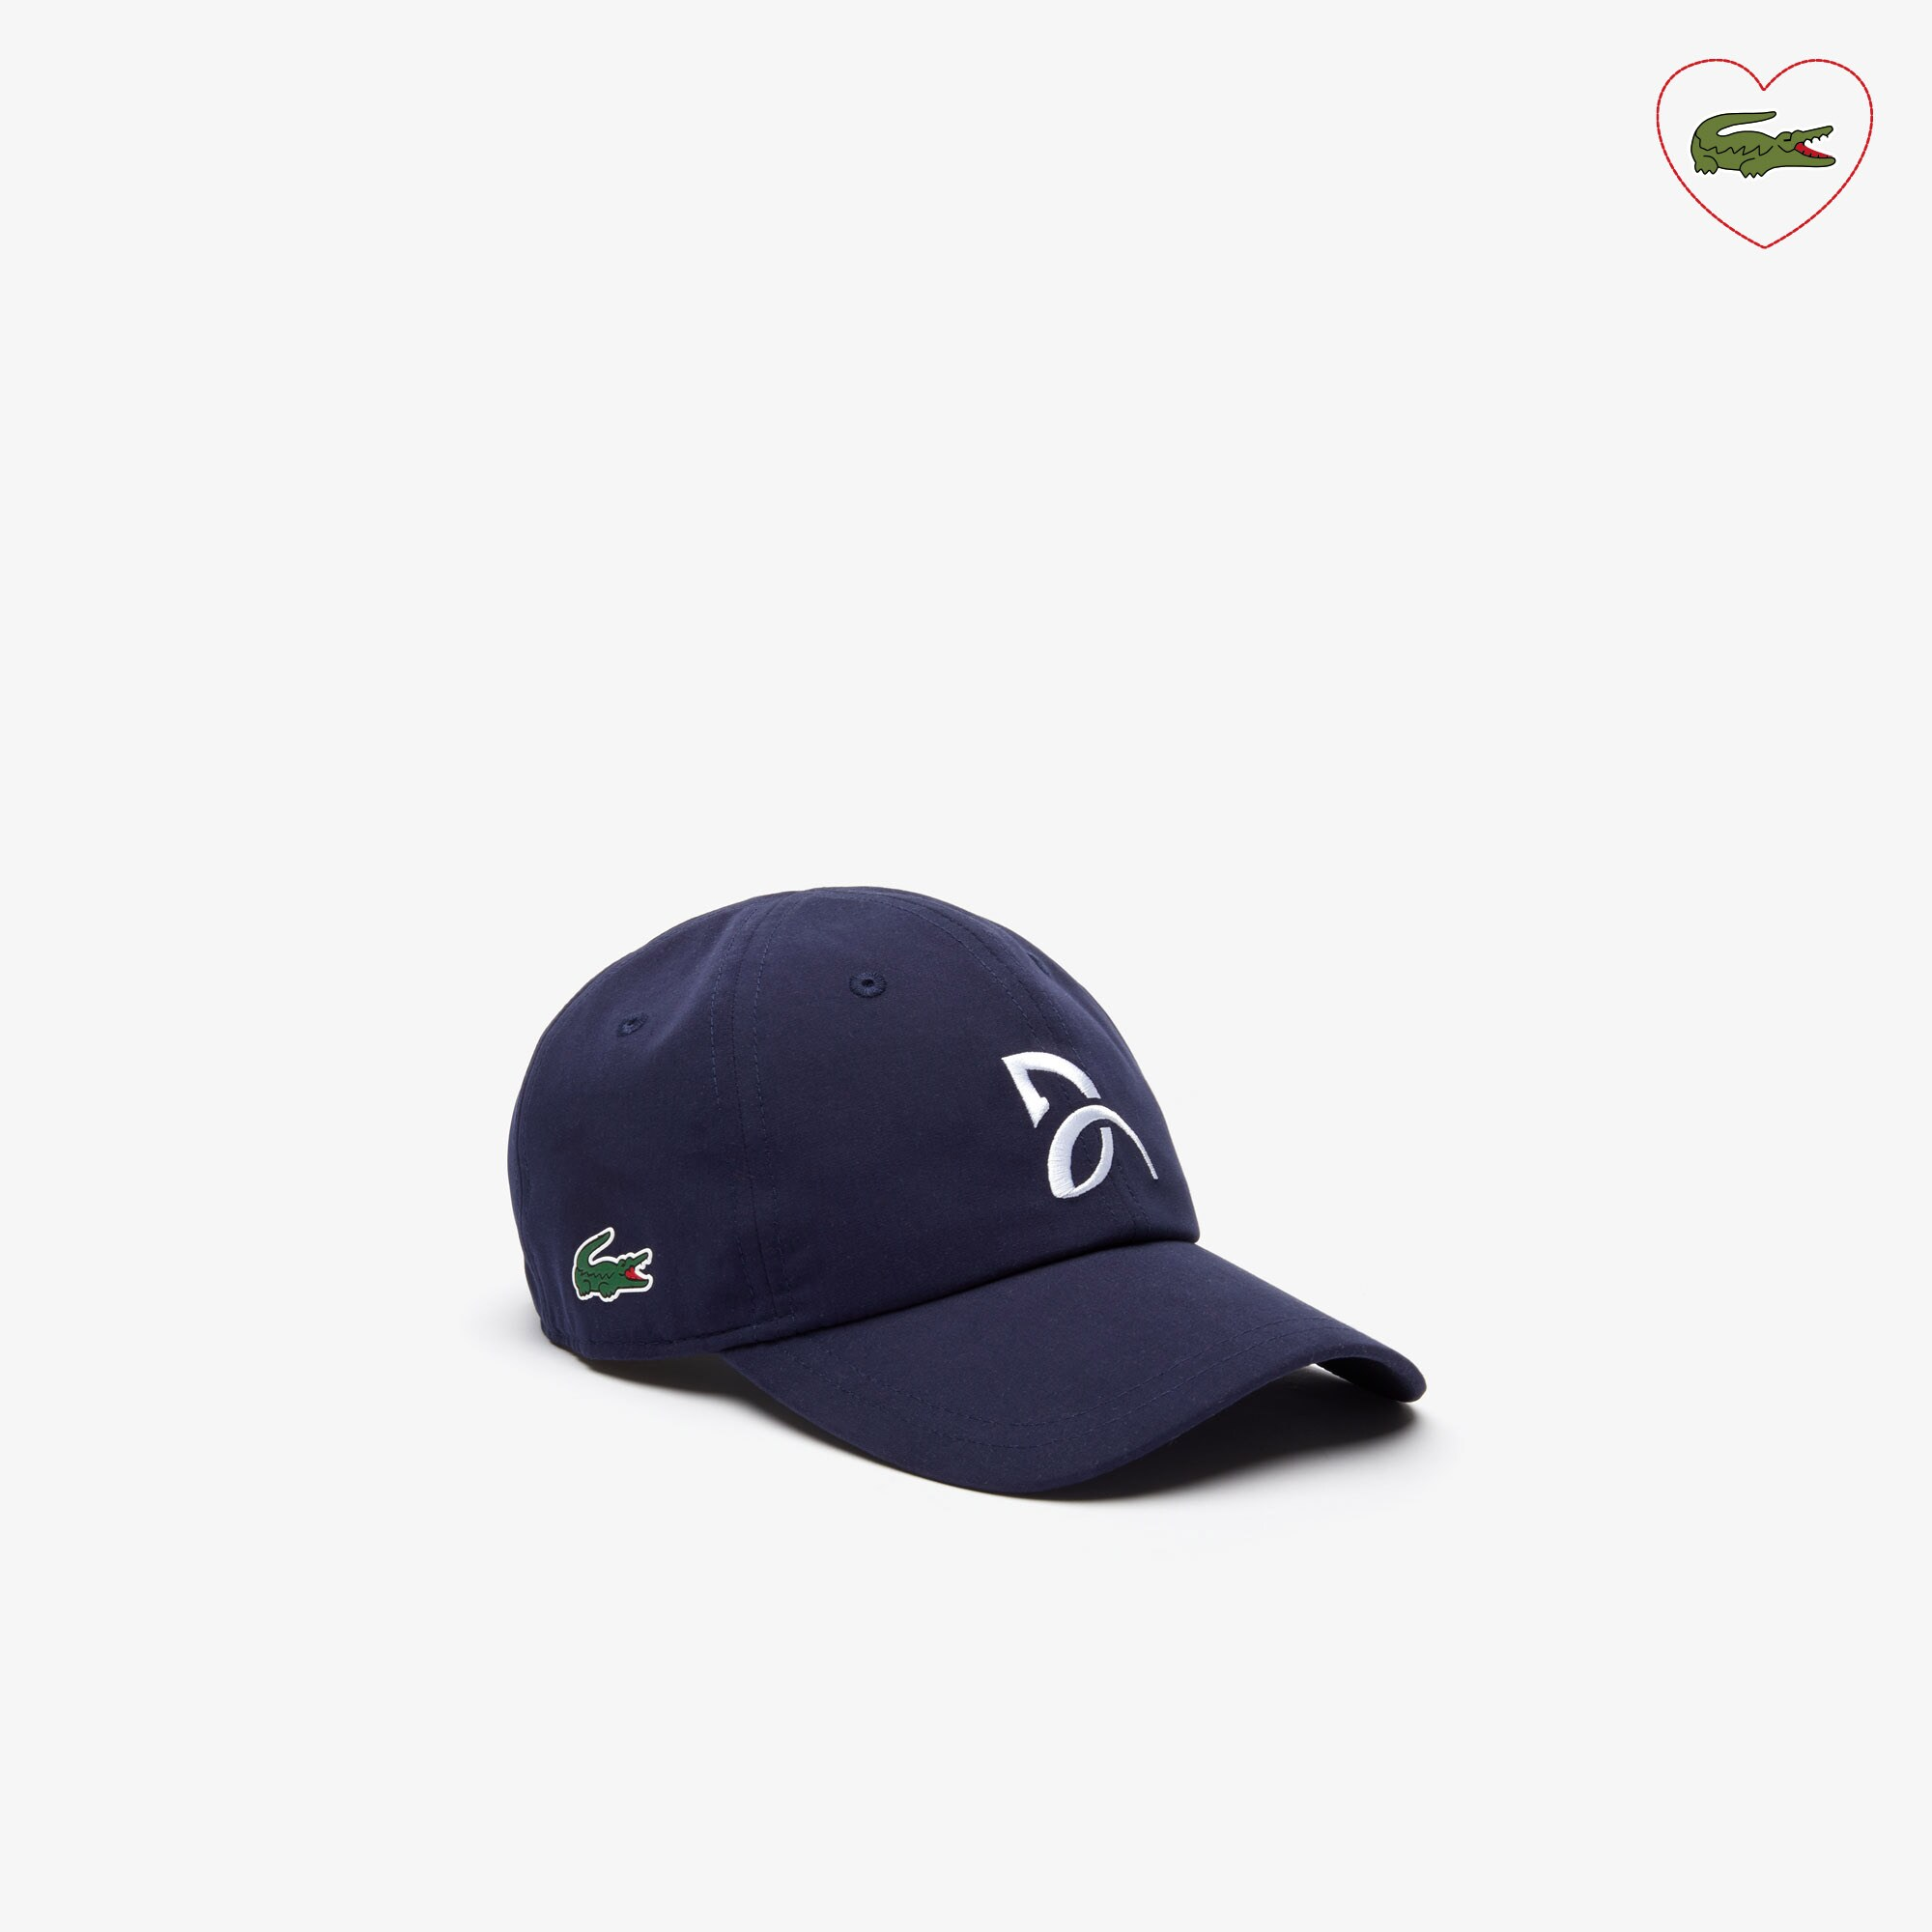 Casquette Tennis Lacoste Sport en Microfibre - Collection Support With Style